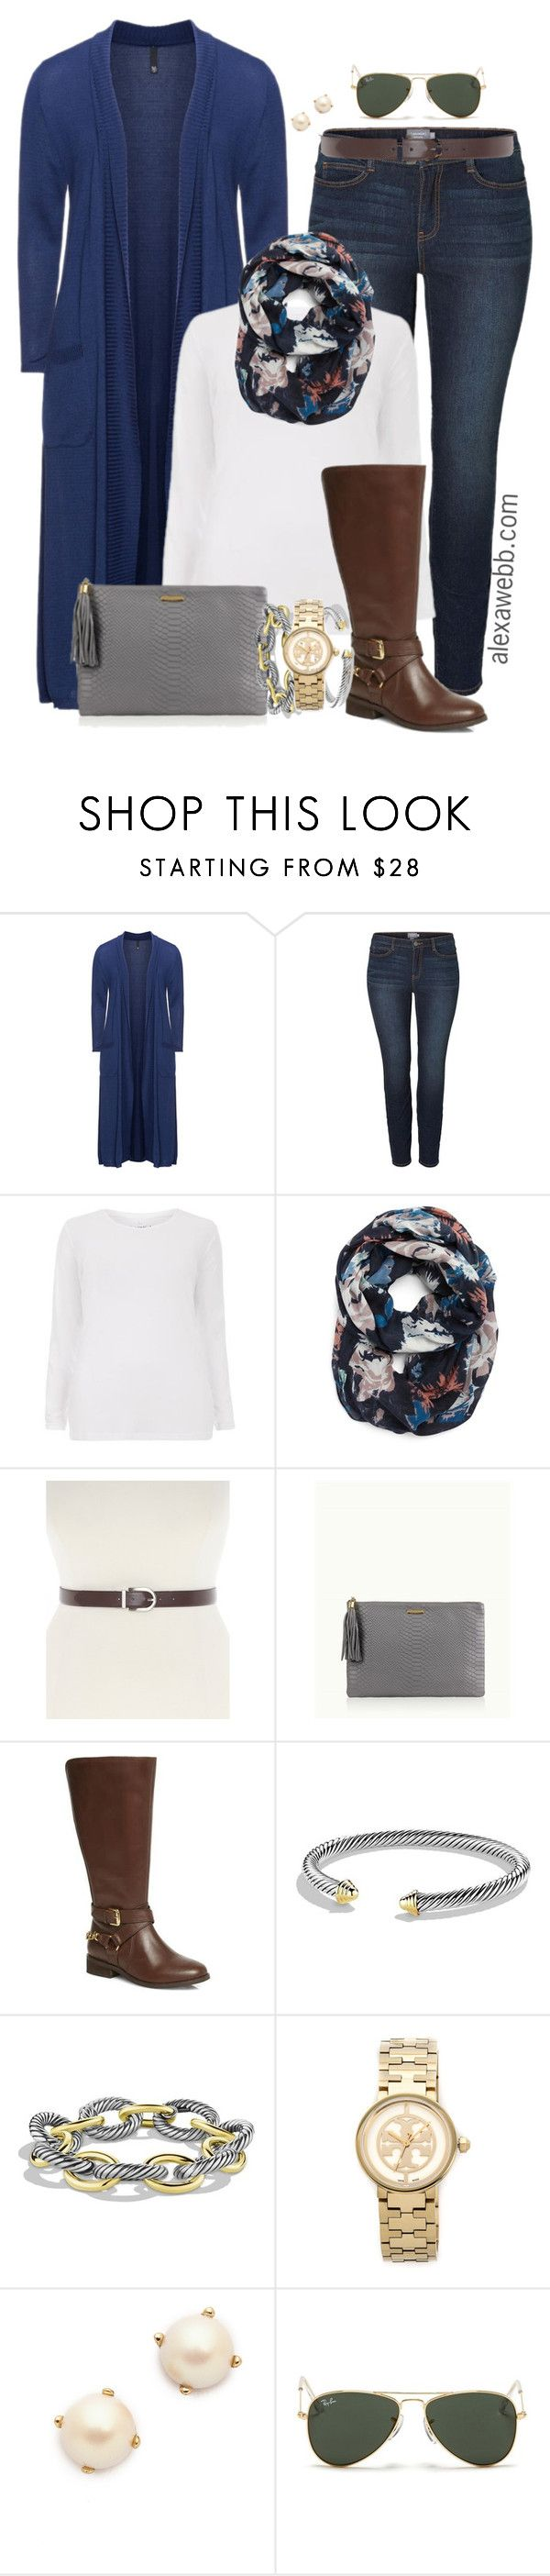 """Plus Size Fashion - Casual Wear"" by alexawebb ❤ liked on Polyvore featuring Manon Baptiste, JunaRose, Halogen, Lane Bryant, GiGi New York, David Yurman, Tory Burch, Kate Spade, Ray-Ban and plussize"